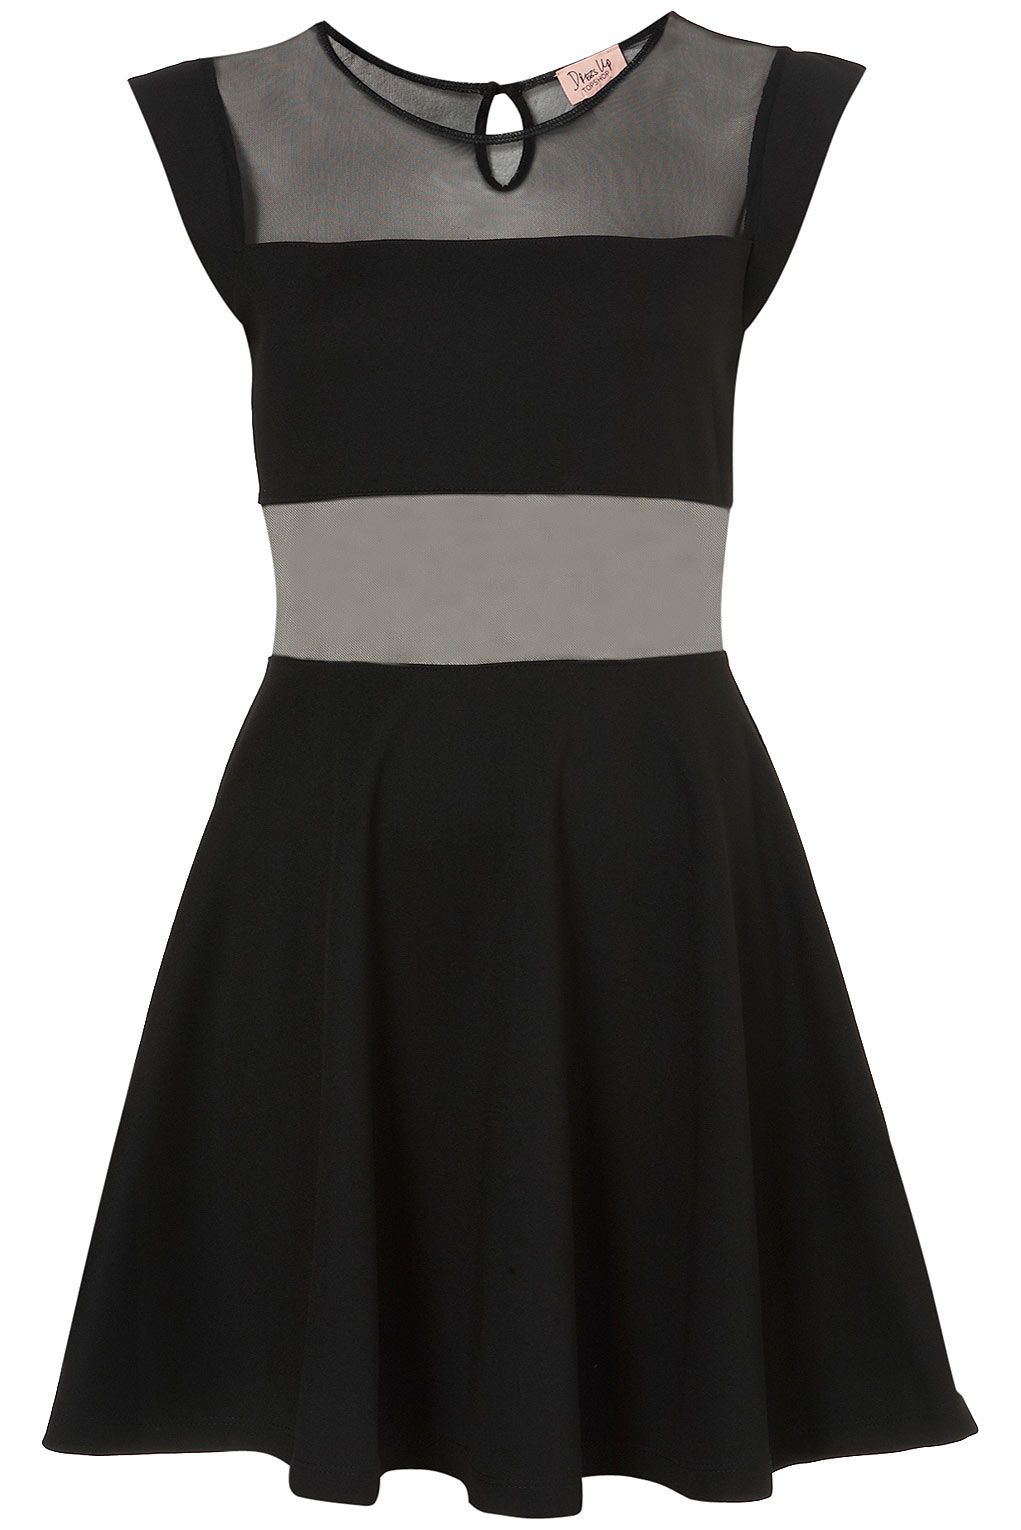 Skater dress from TopShop